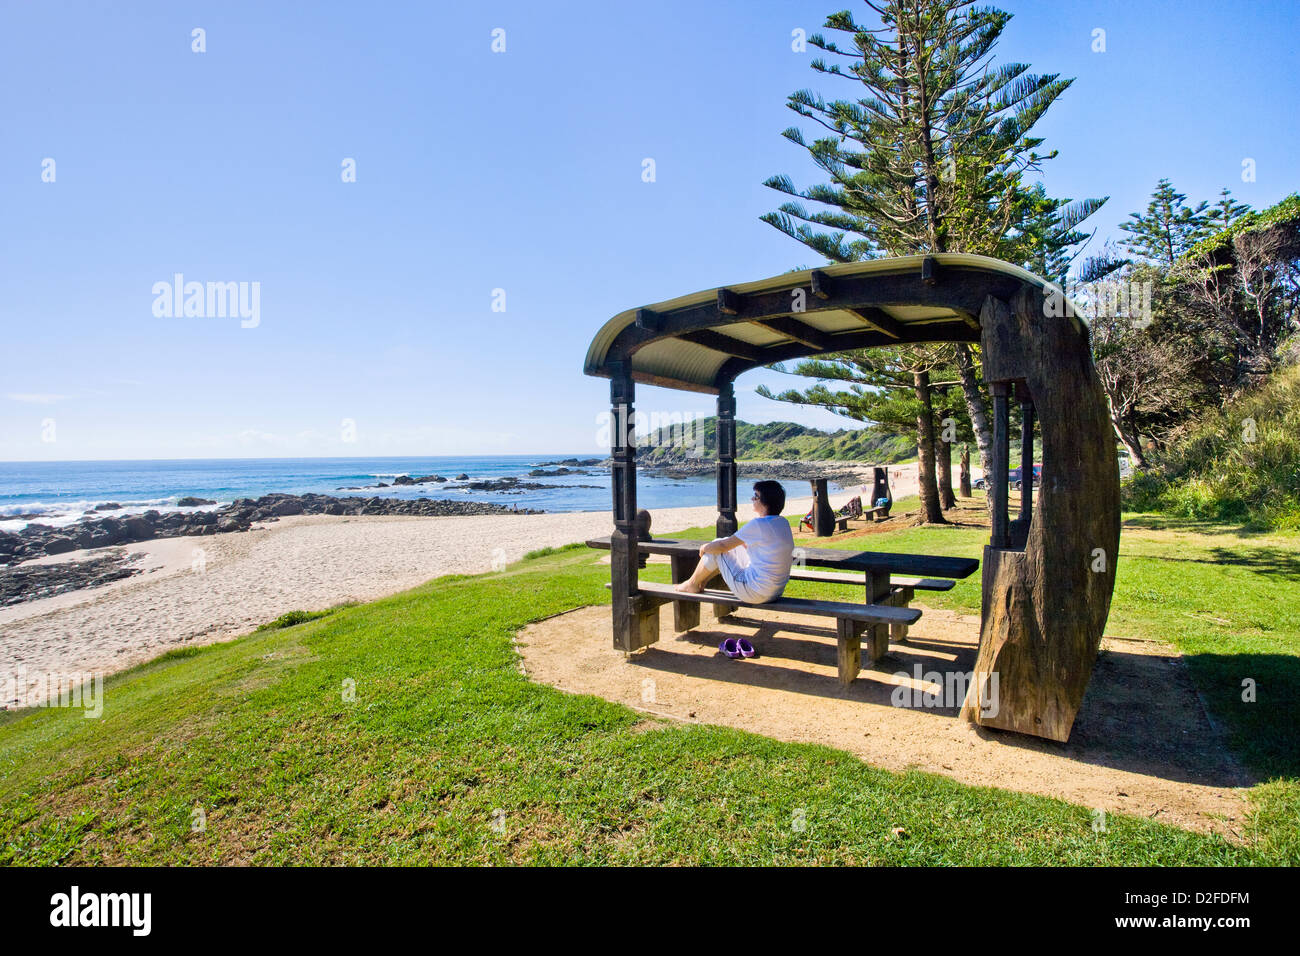 Port Macquarie, Shelly Beach, public art on the beach, caravan style picnic shelter in memory of Harry Thomson - Stock Image